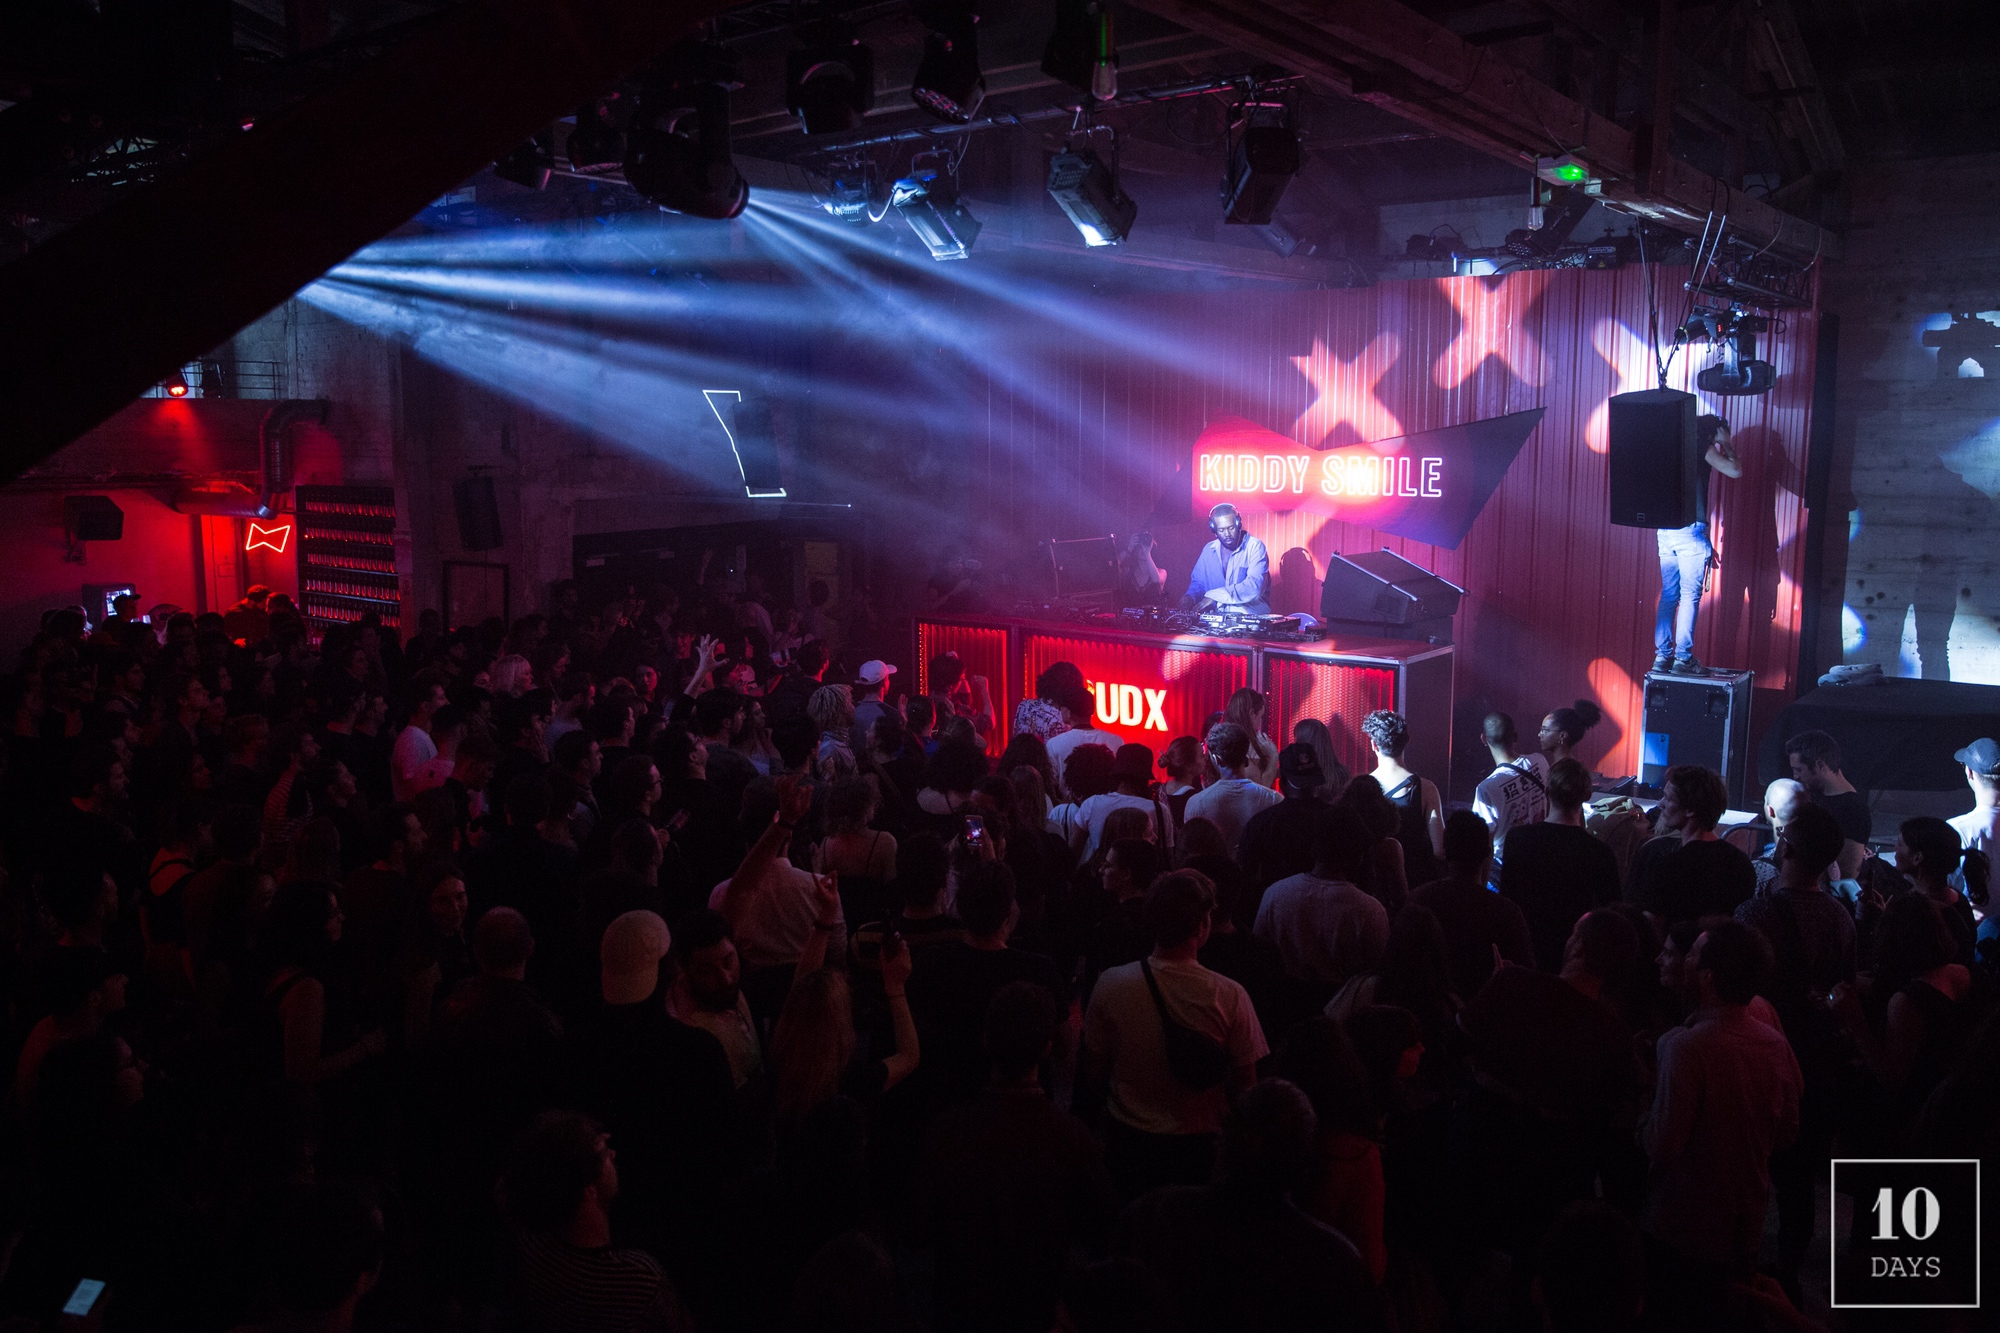 BUDX PARIS DAY 2 Feat Kiddy Smile, Maceo Plex and More arthur mestrot